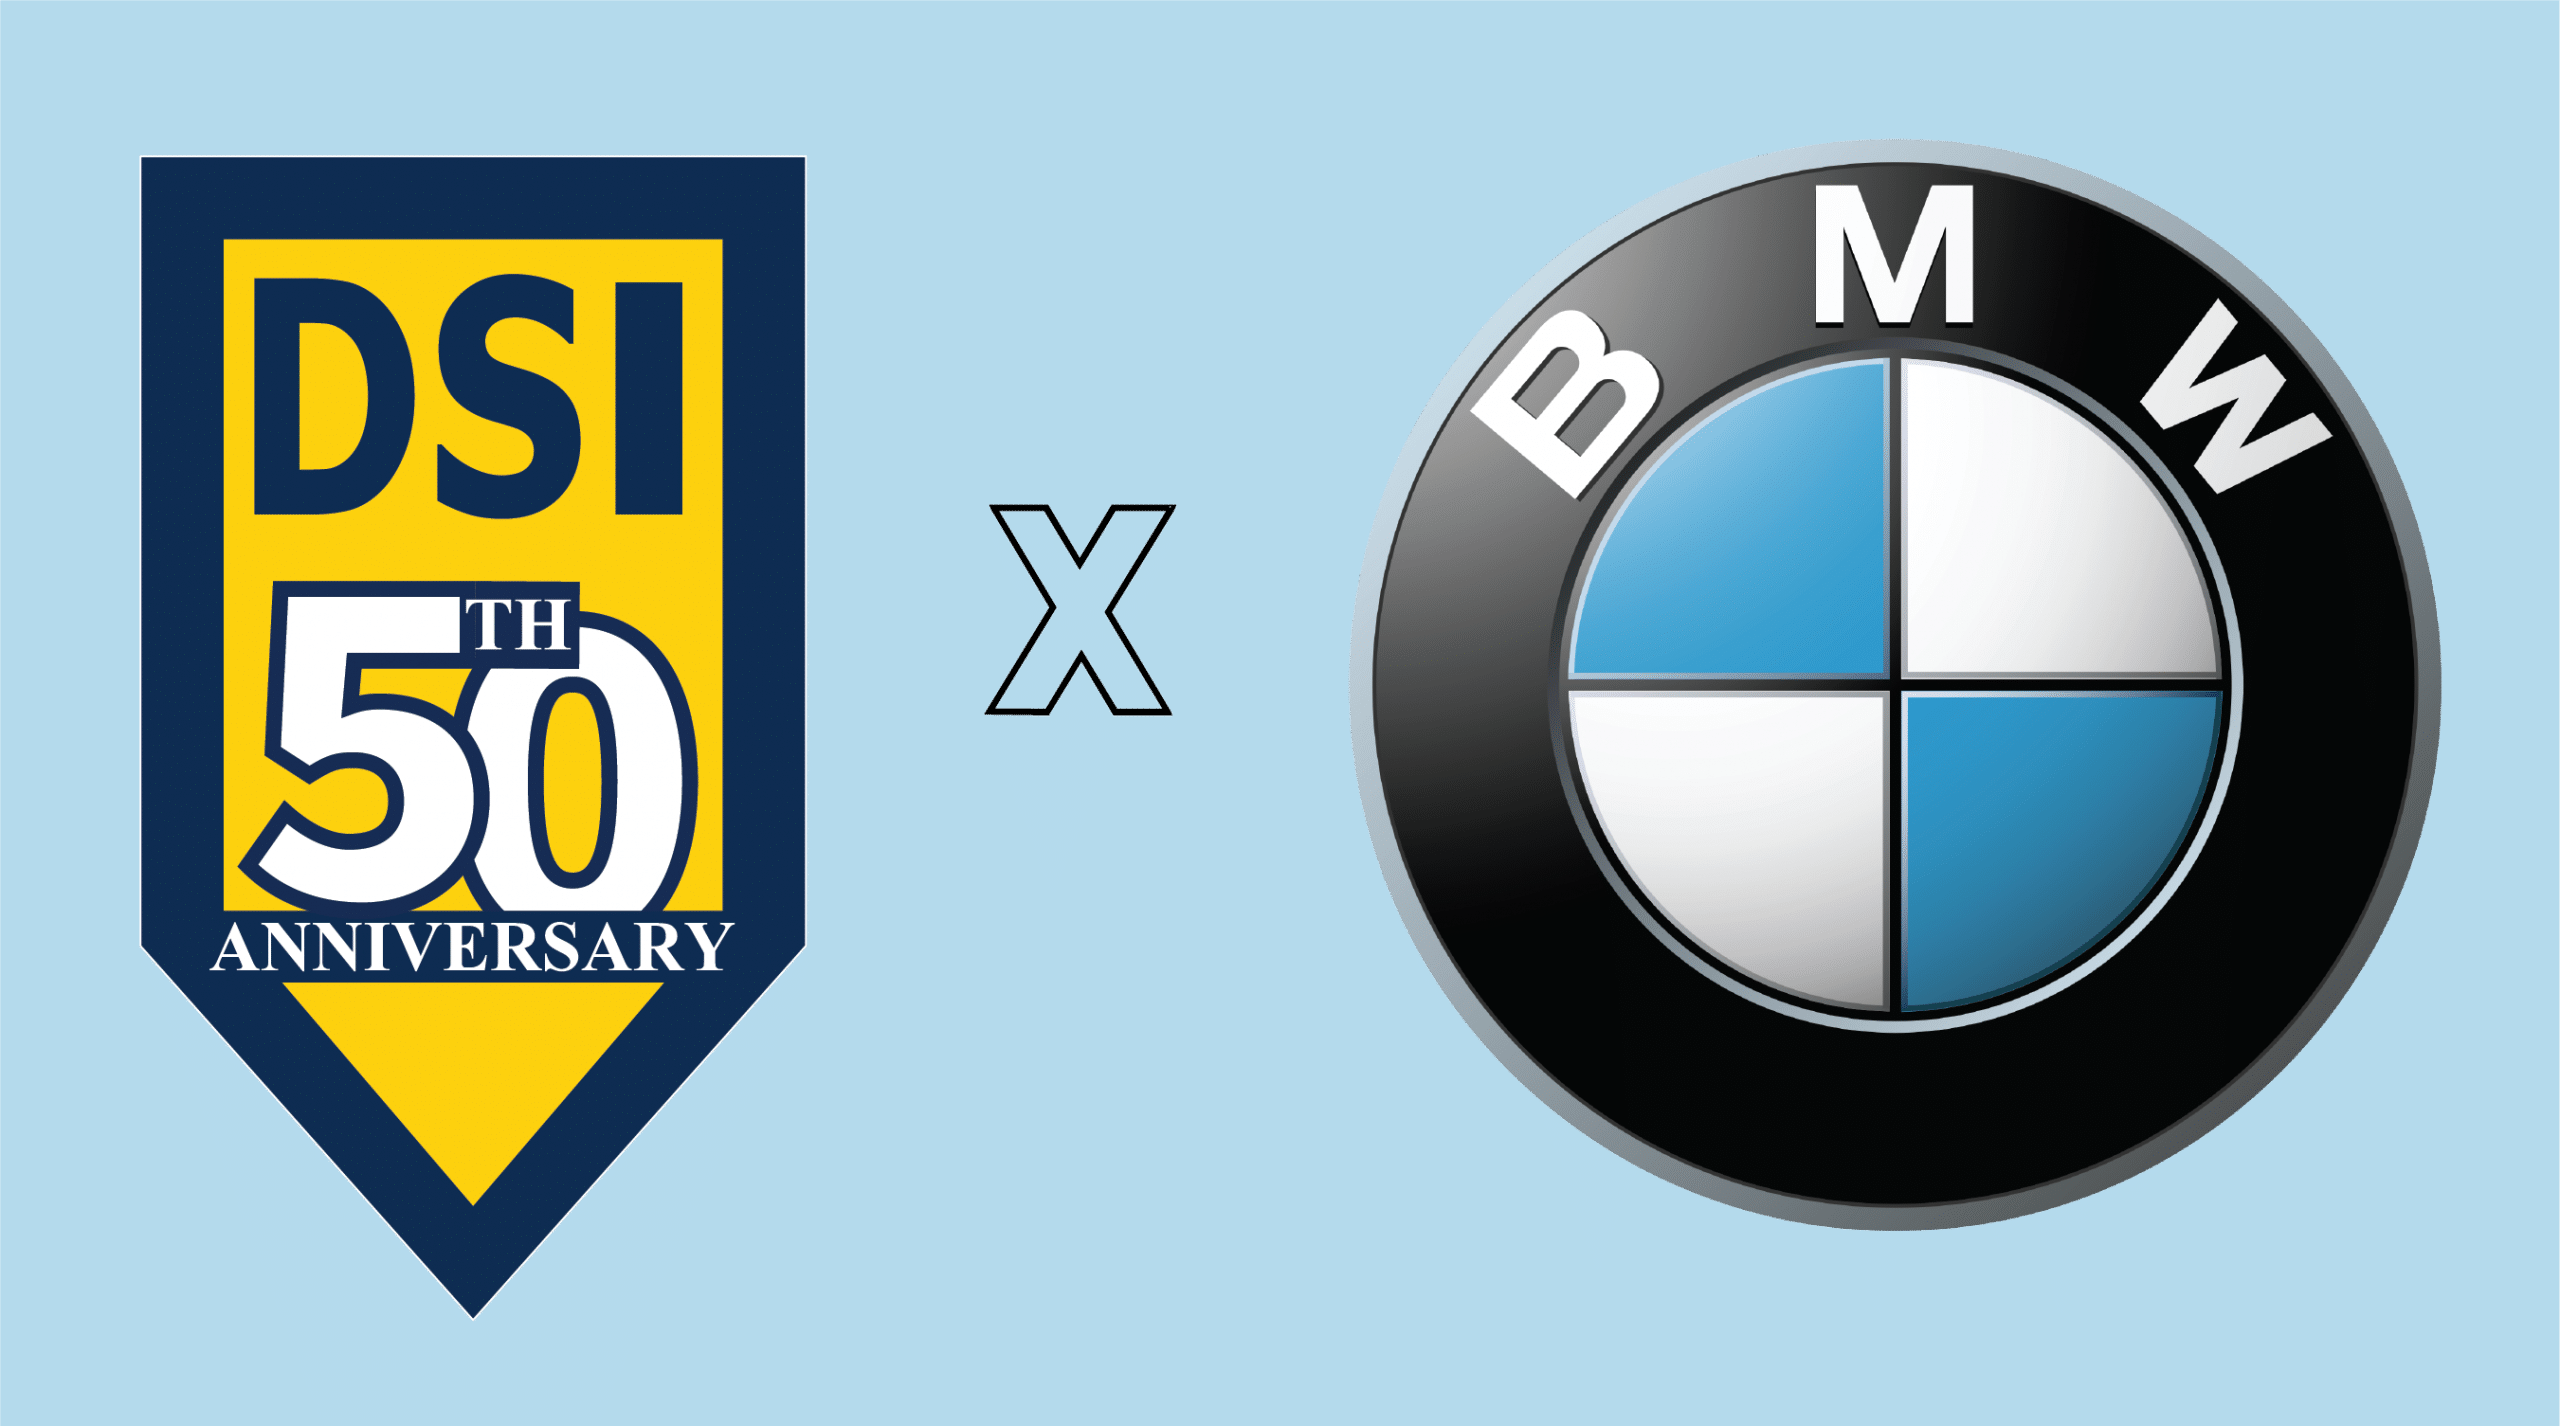 Logos of DSI and BMW together